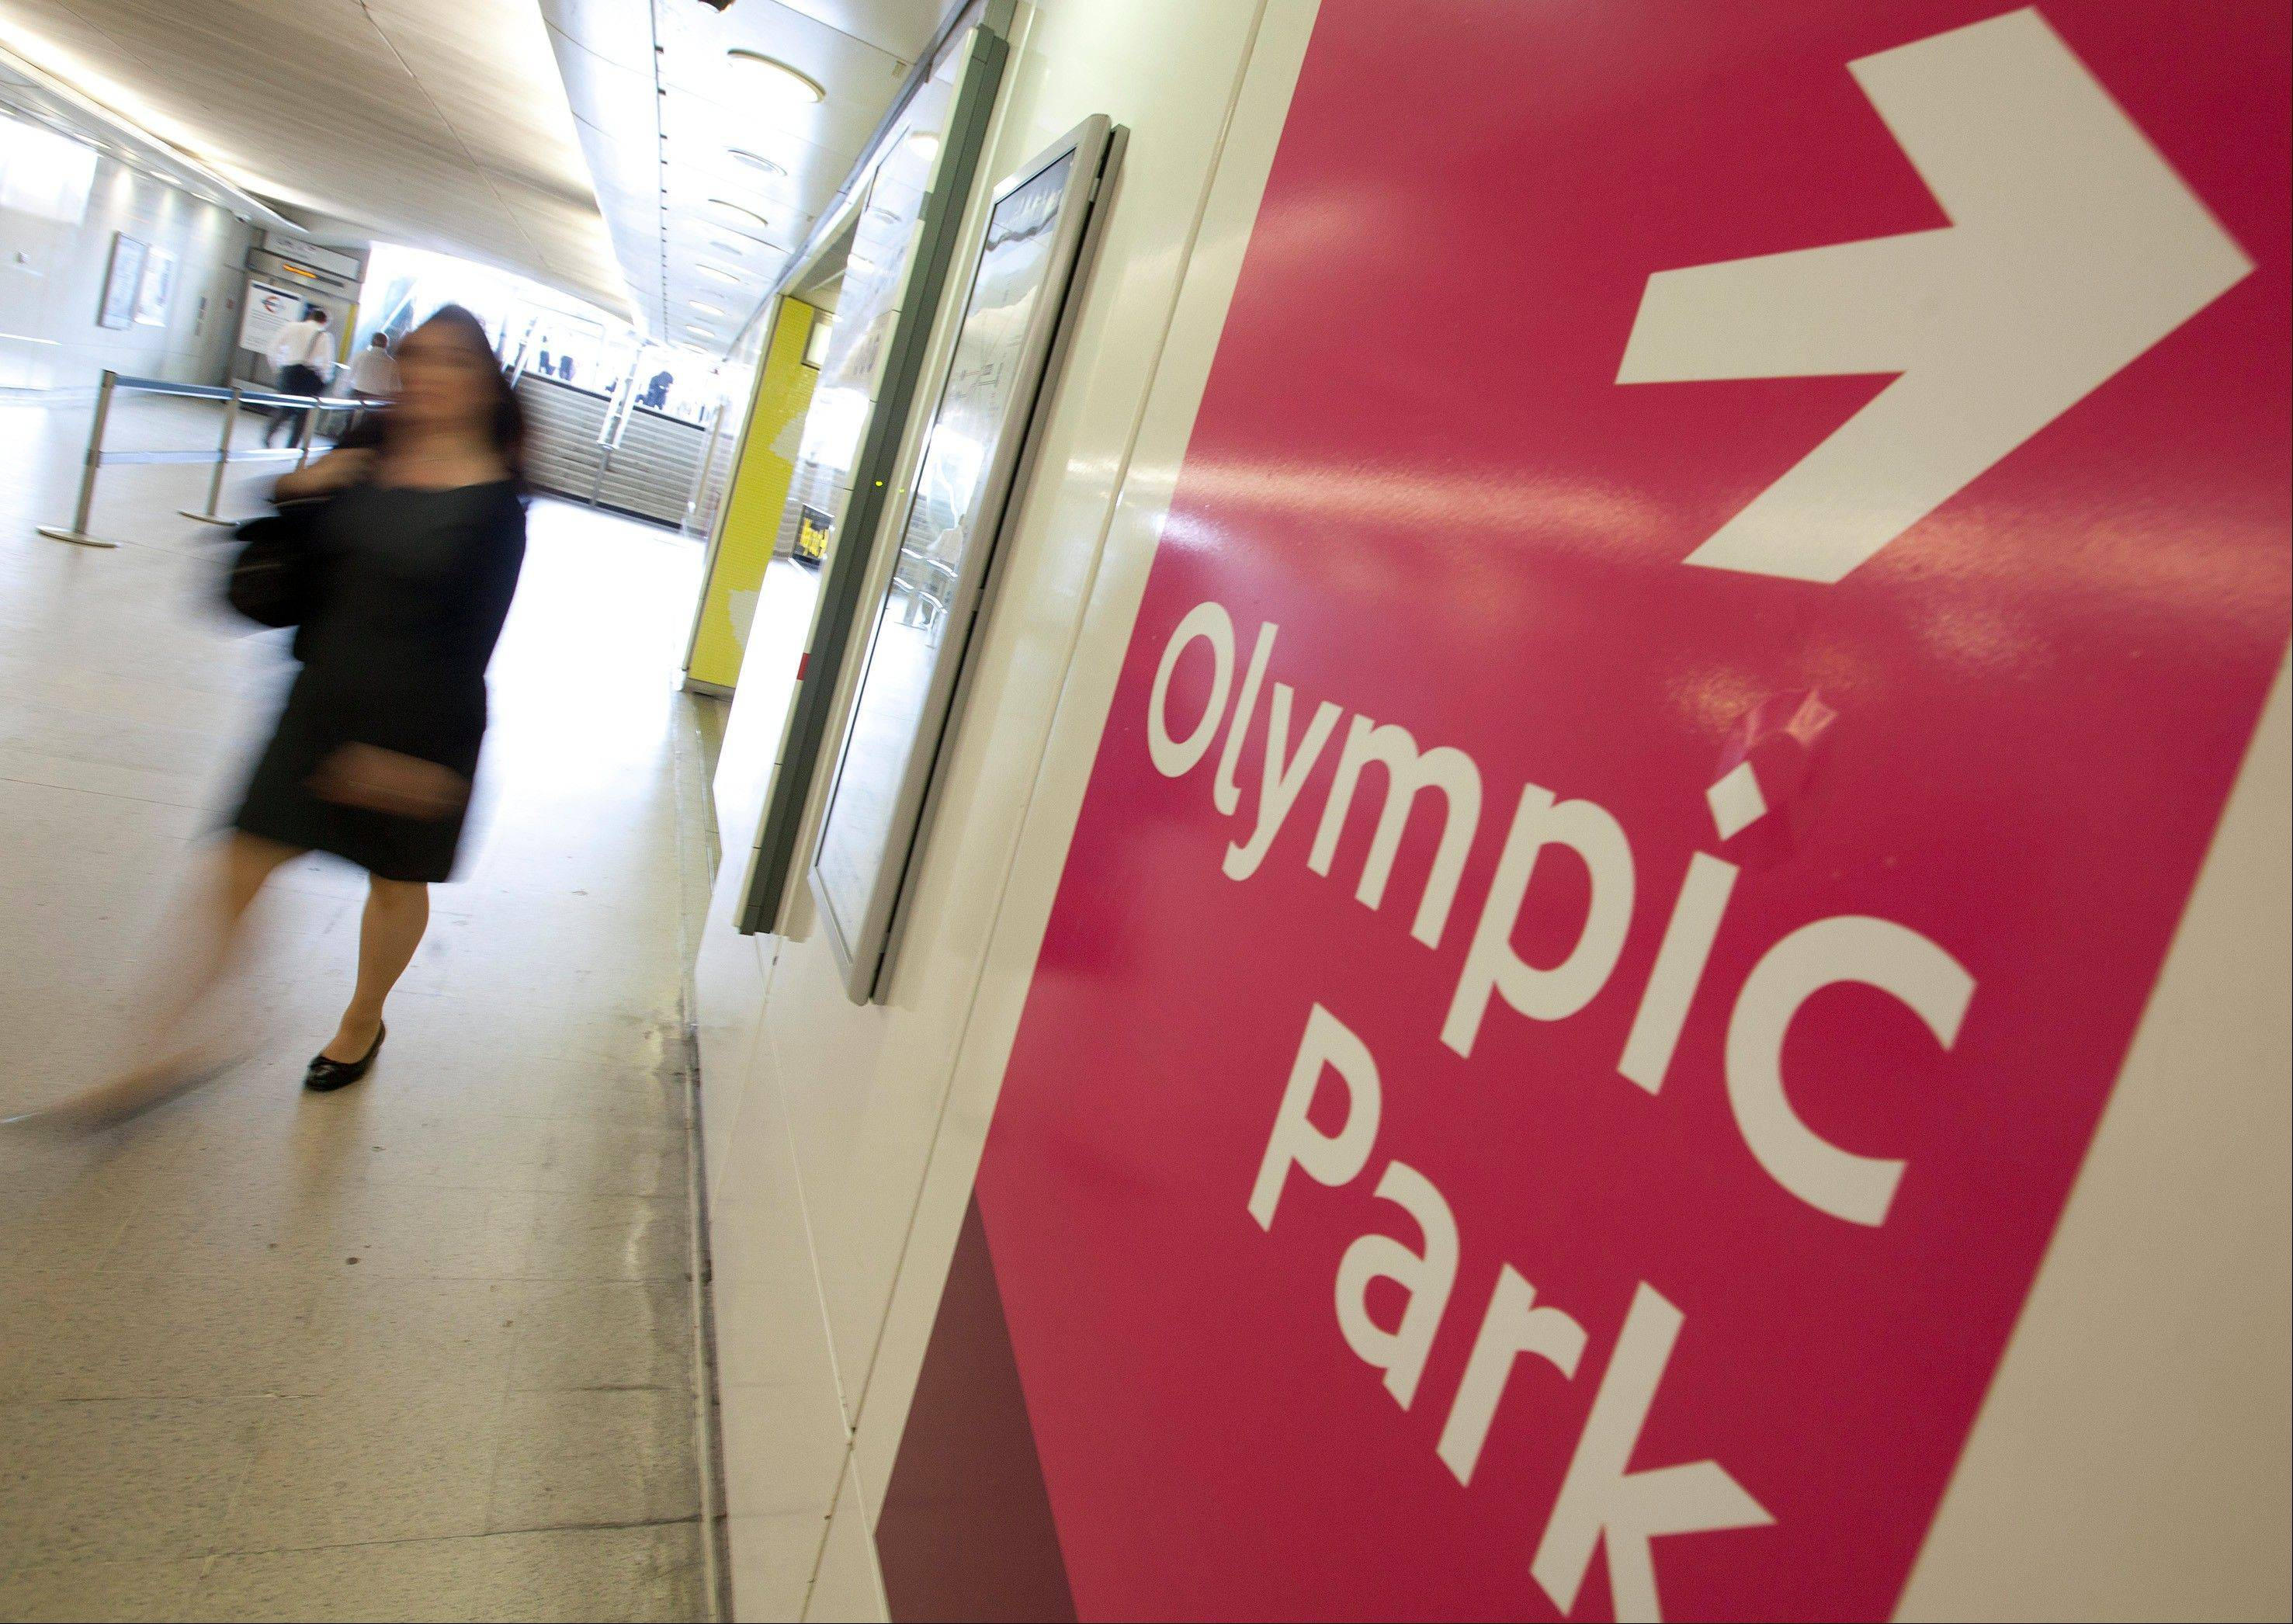 Signs pointing to the Olympic Park are seen at Stratford underground in station.